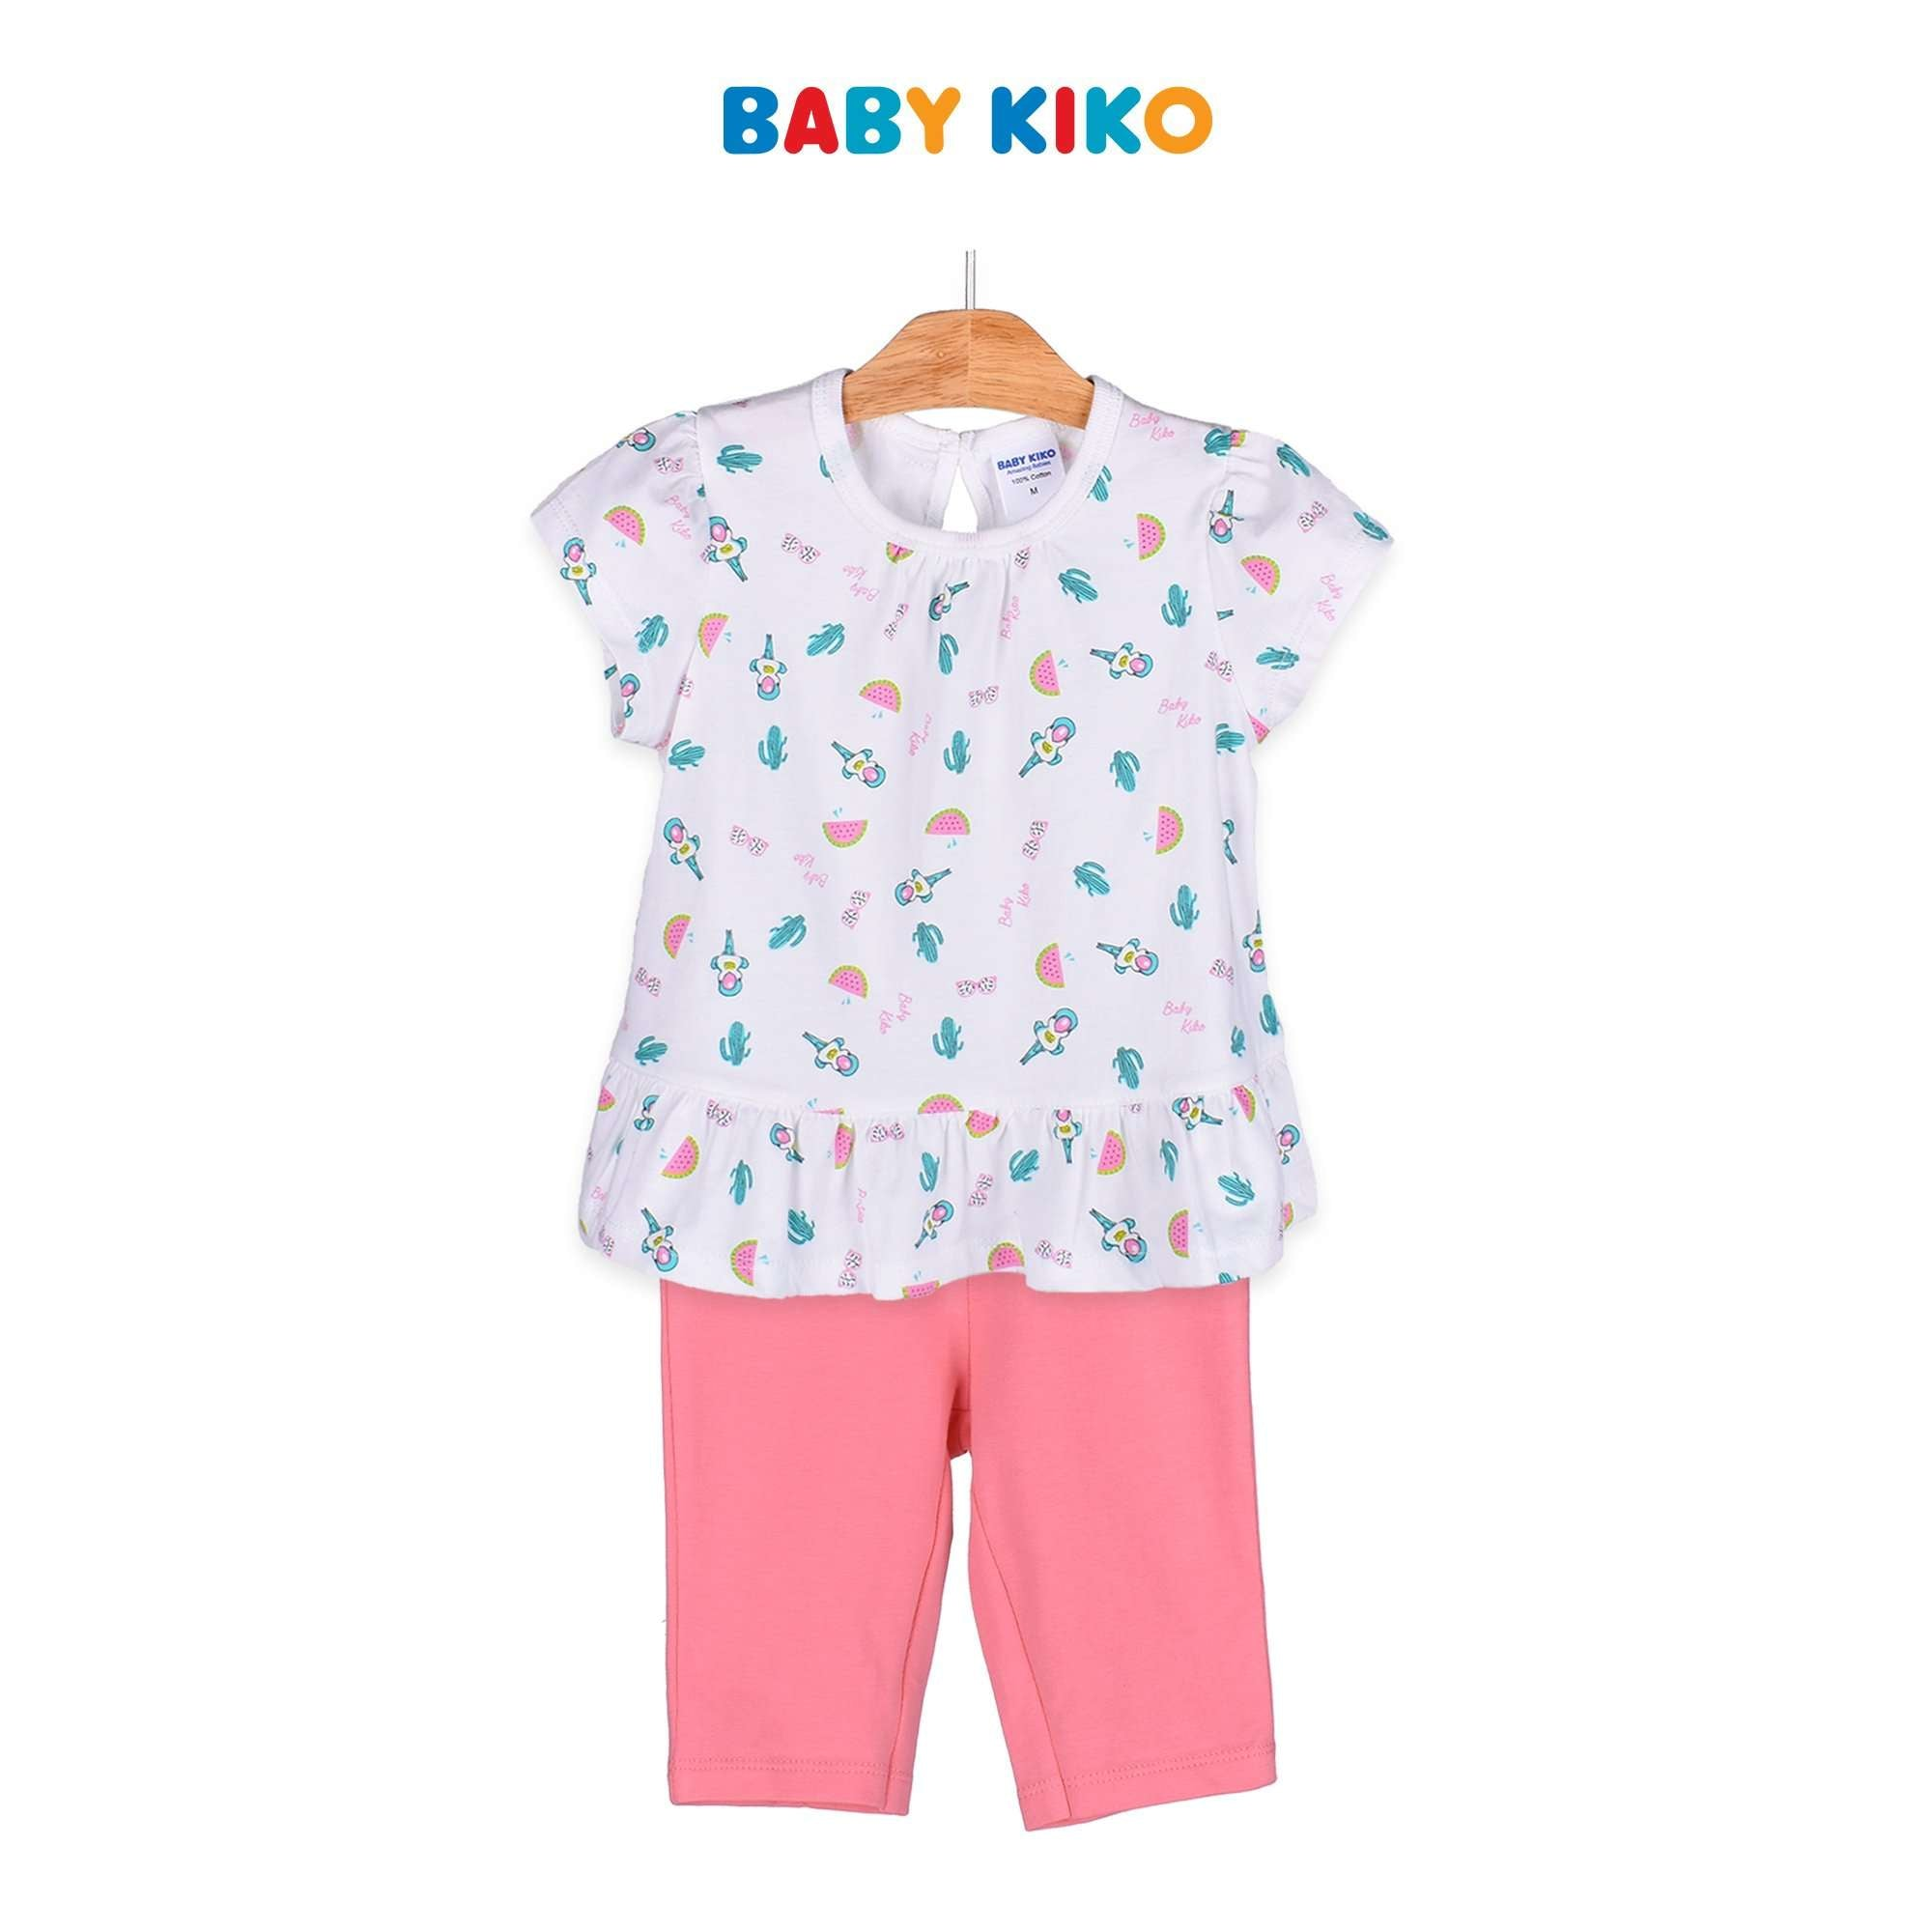 Baby KIKO Toddler Girl Short Sleeve Bermuda Suit - Peach 325158-412 : Buy Baby KIKO online at CMG.MY